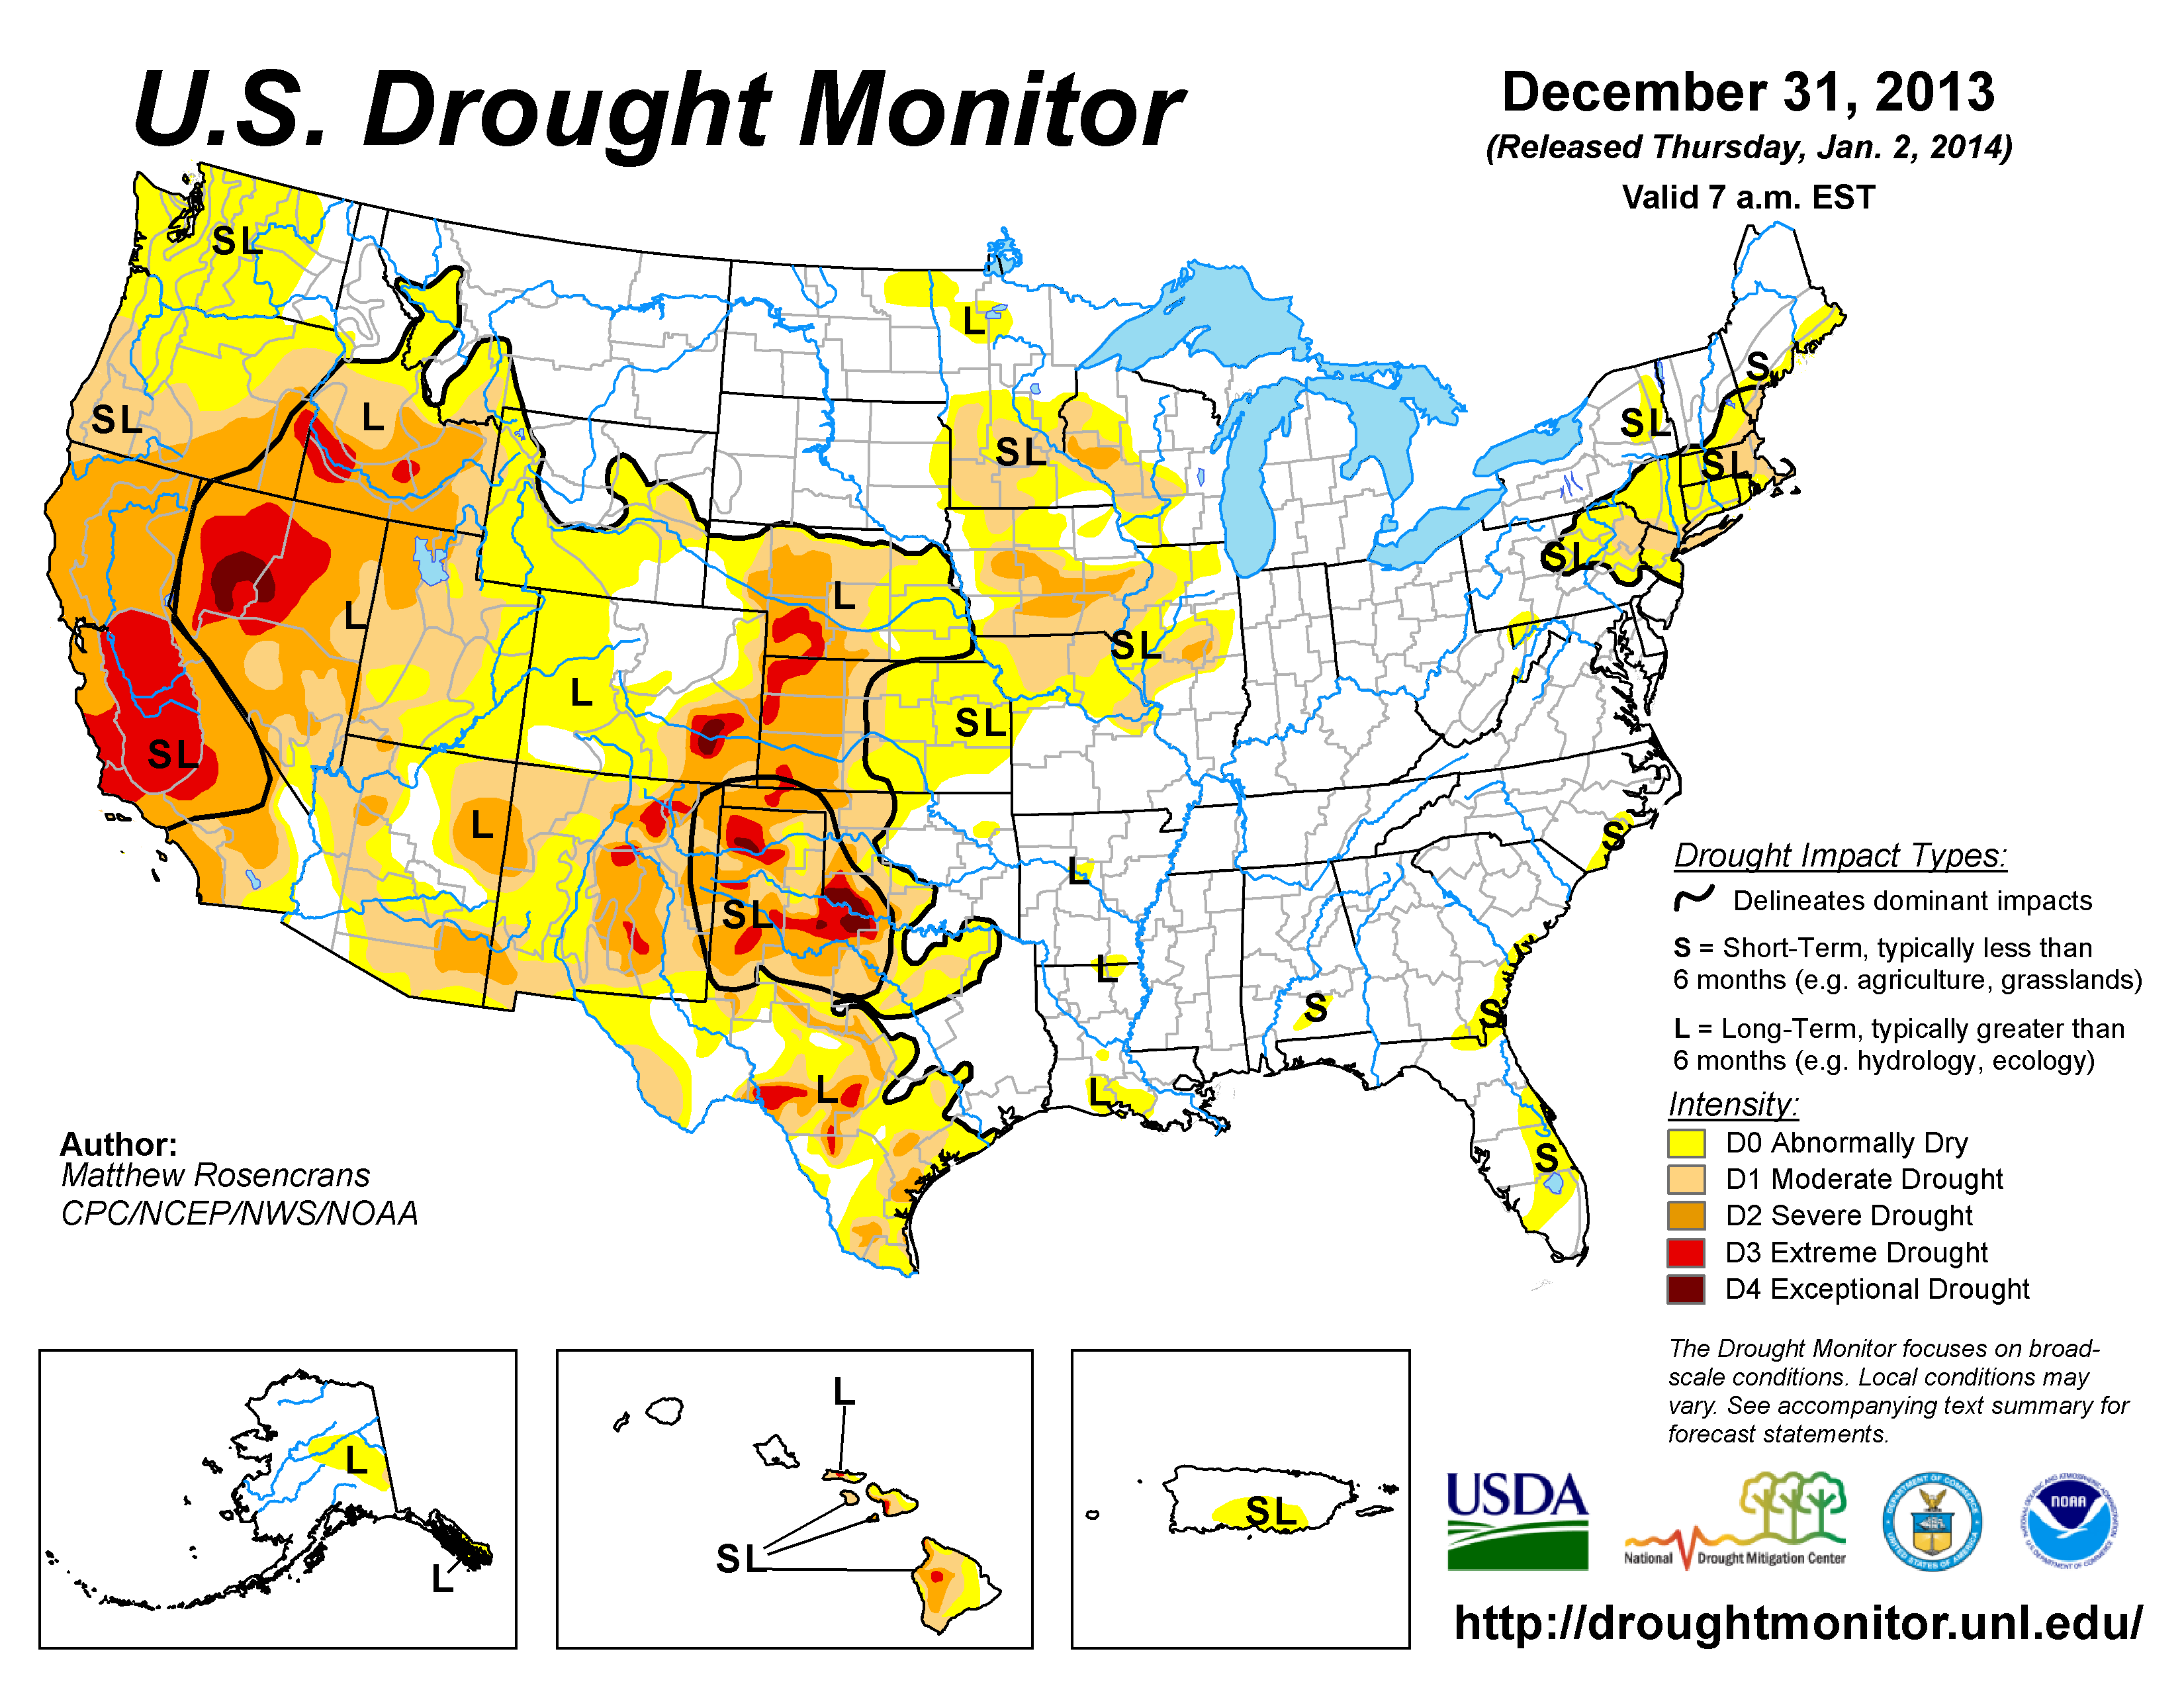 The U.S. Drought Monitor drought map valid December 31, 2013